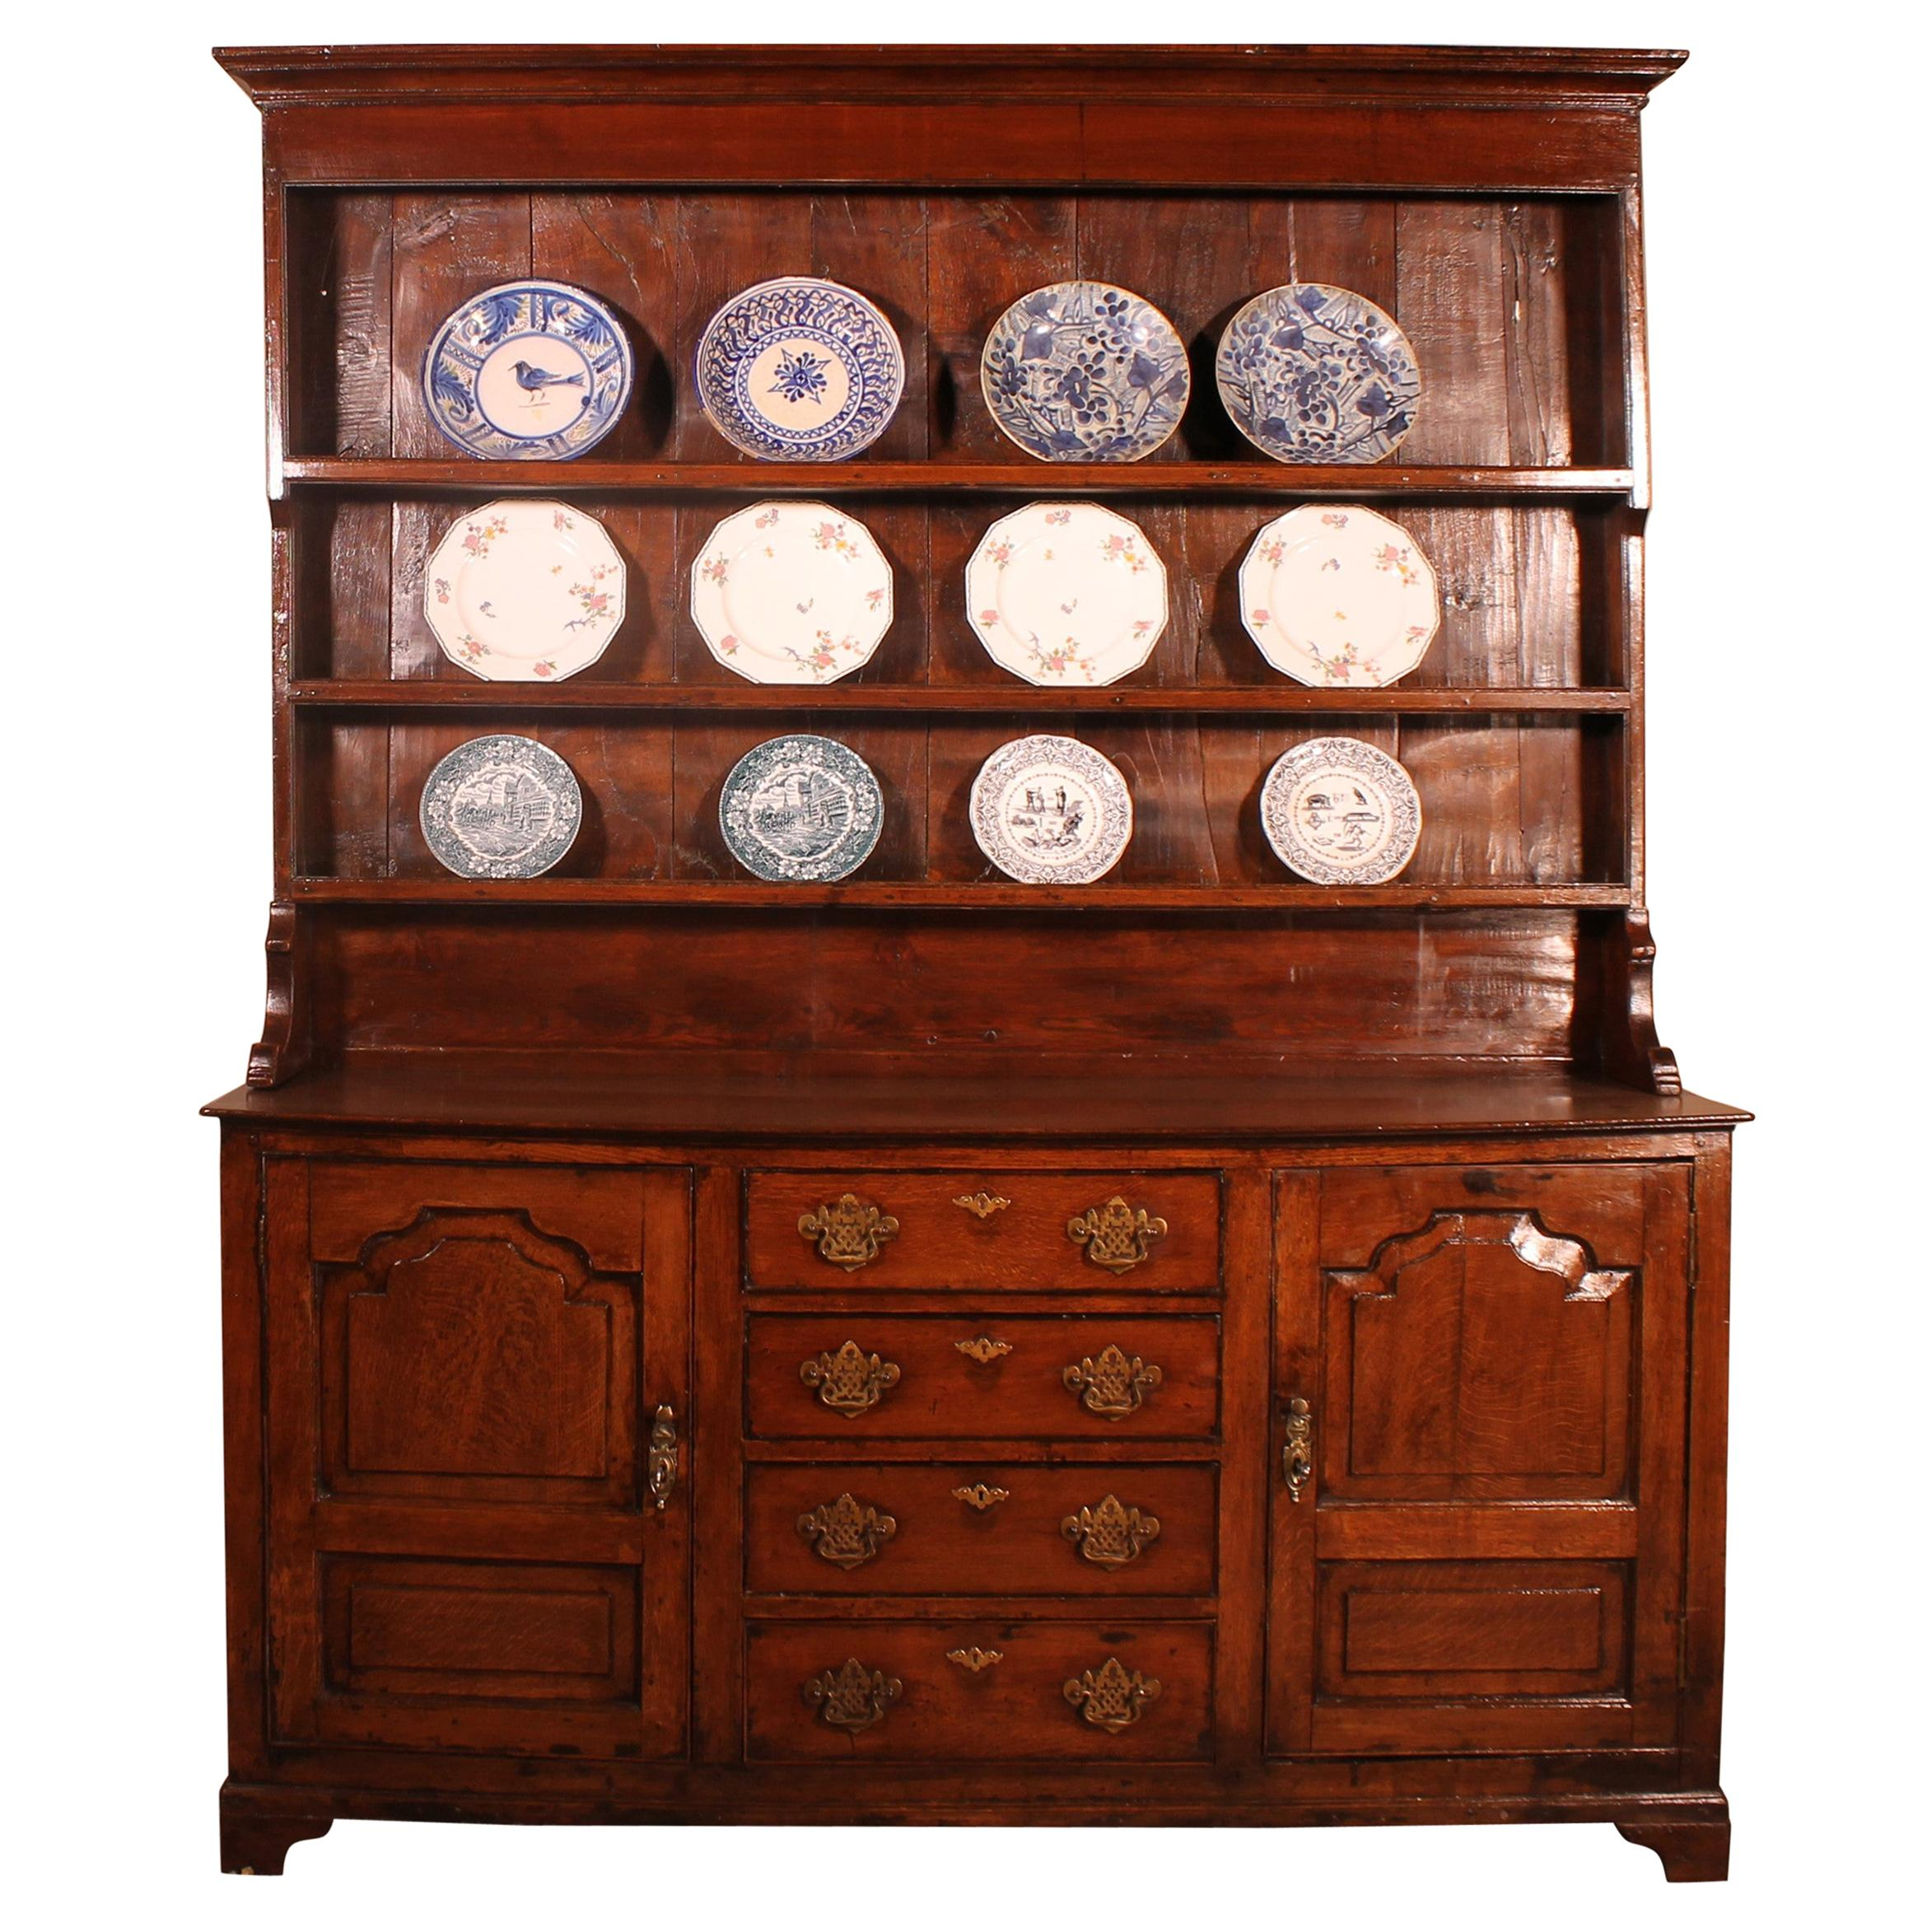 English Oak Dresser and Rack Early 18th Century